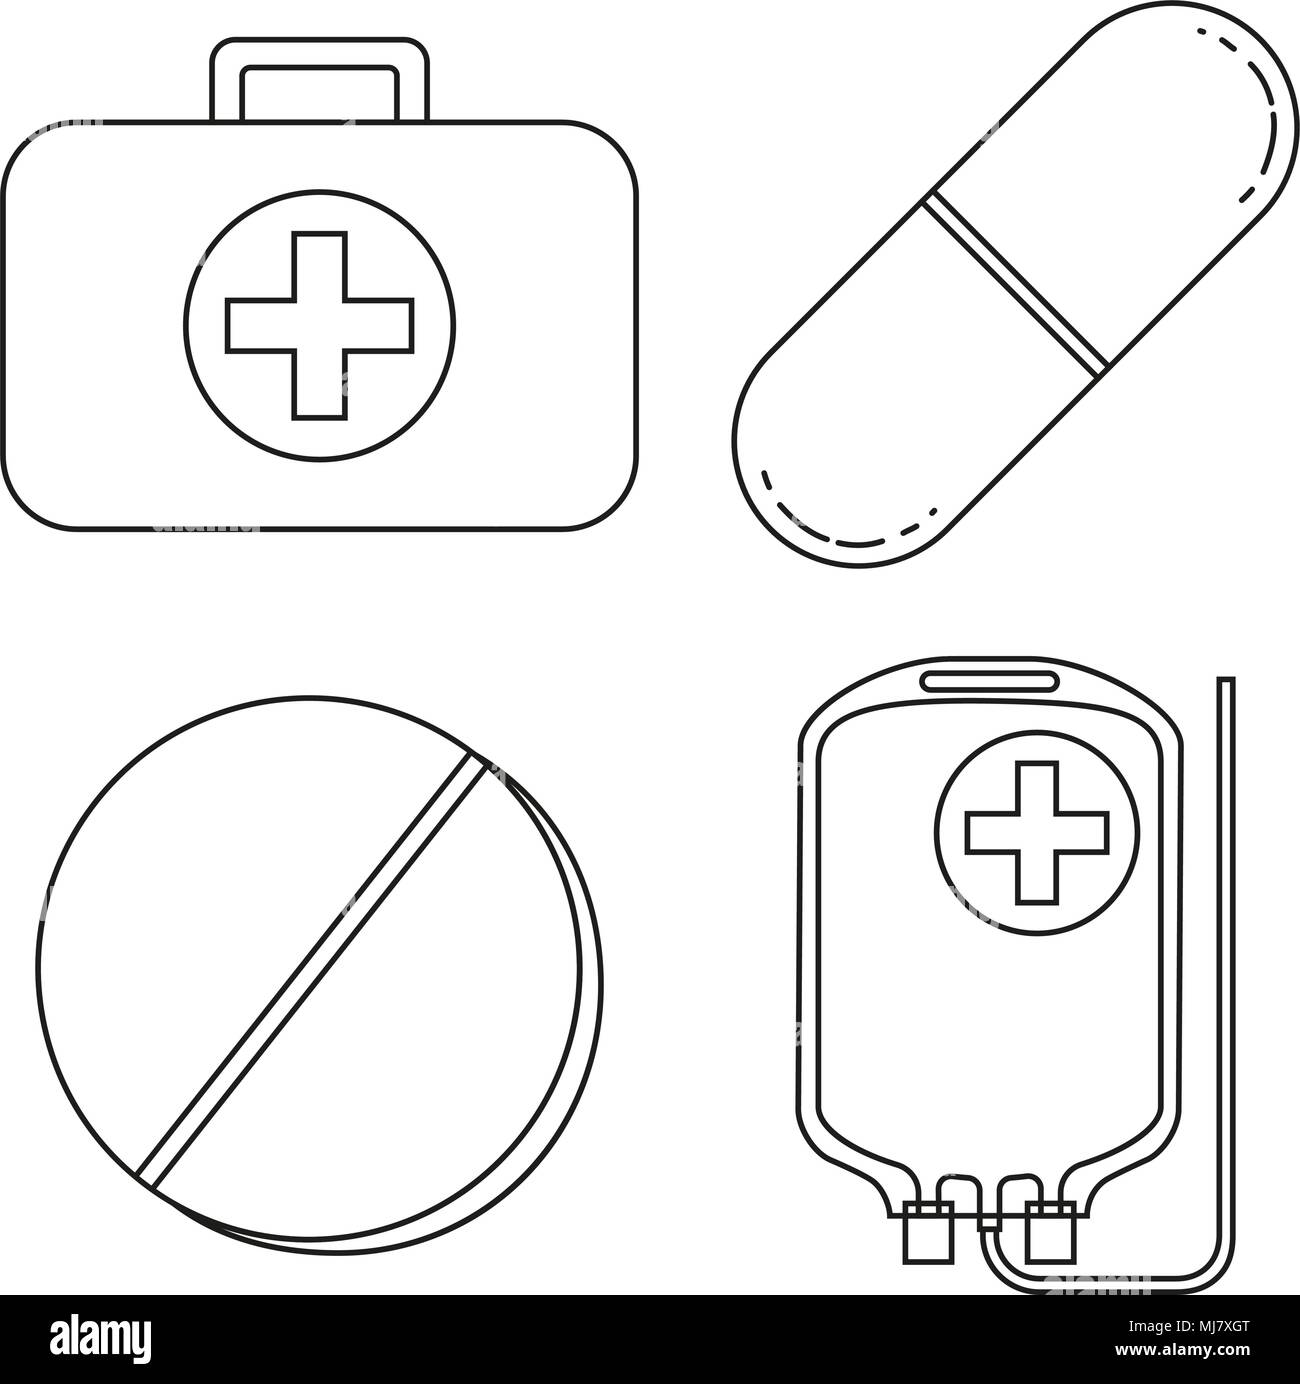 Line art black and white first aid kit content set. Pills drugs and IV bag. Healthcare themed vector illustration for icon, sticker, sign, patch, cert - Stock Vector